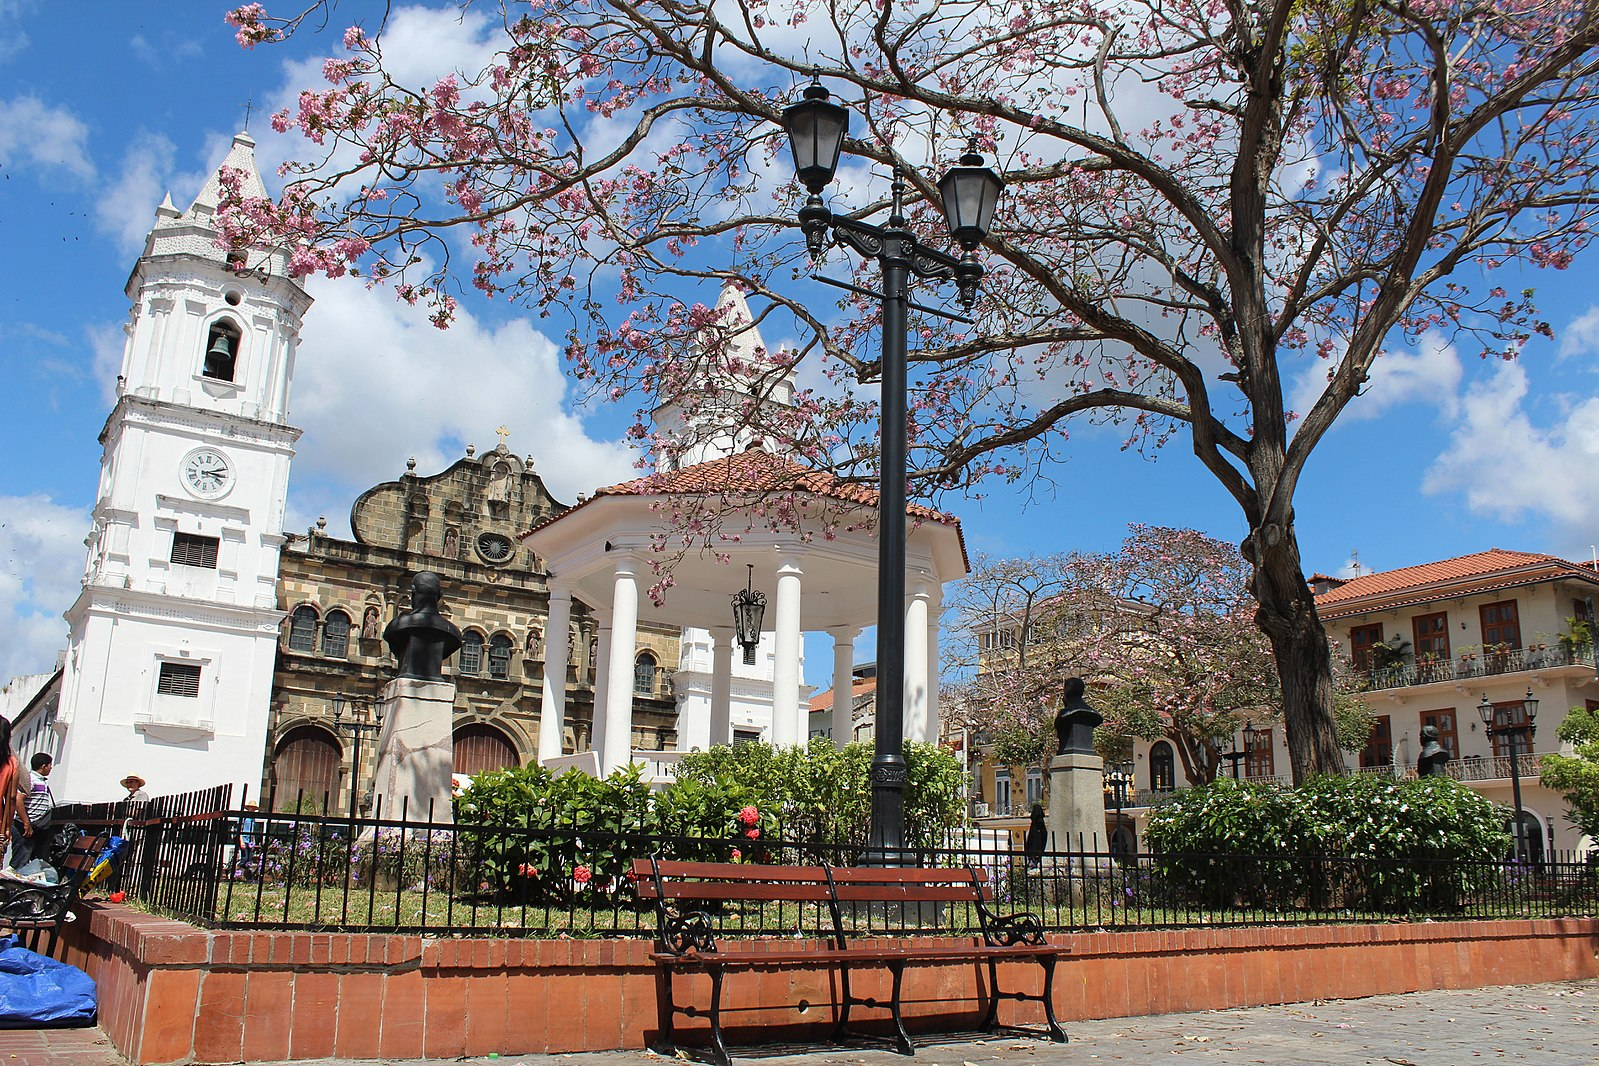 1599px-Plaza_Catedral_de_Panamá-Casco_Antiguo.jpg